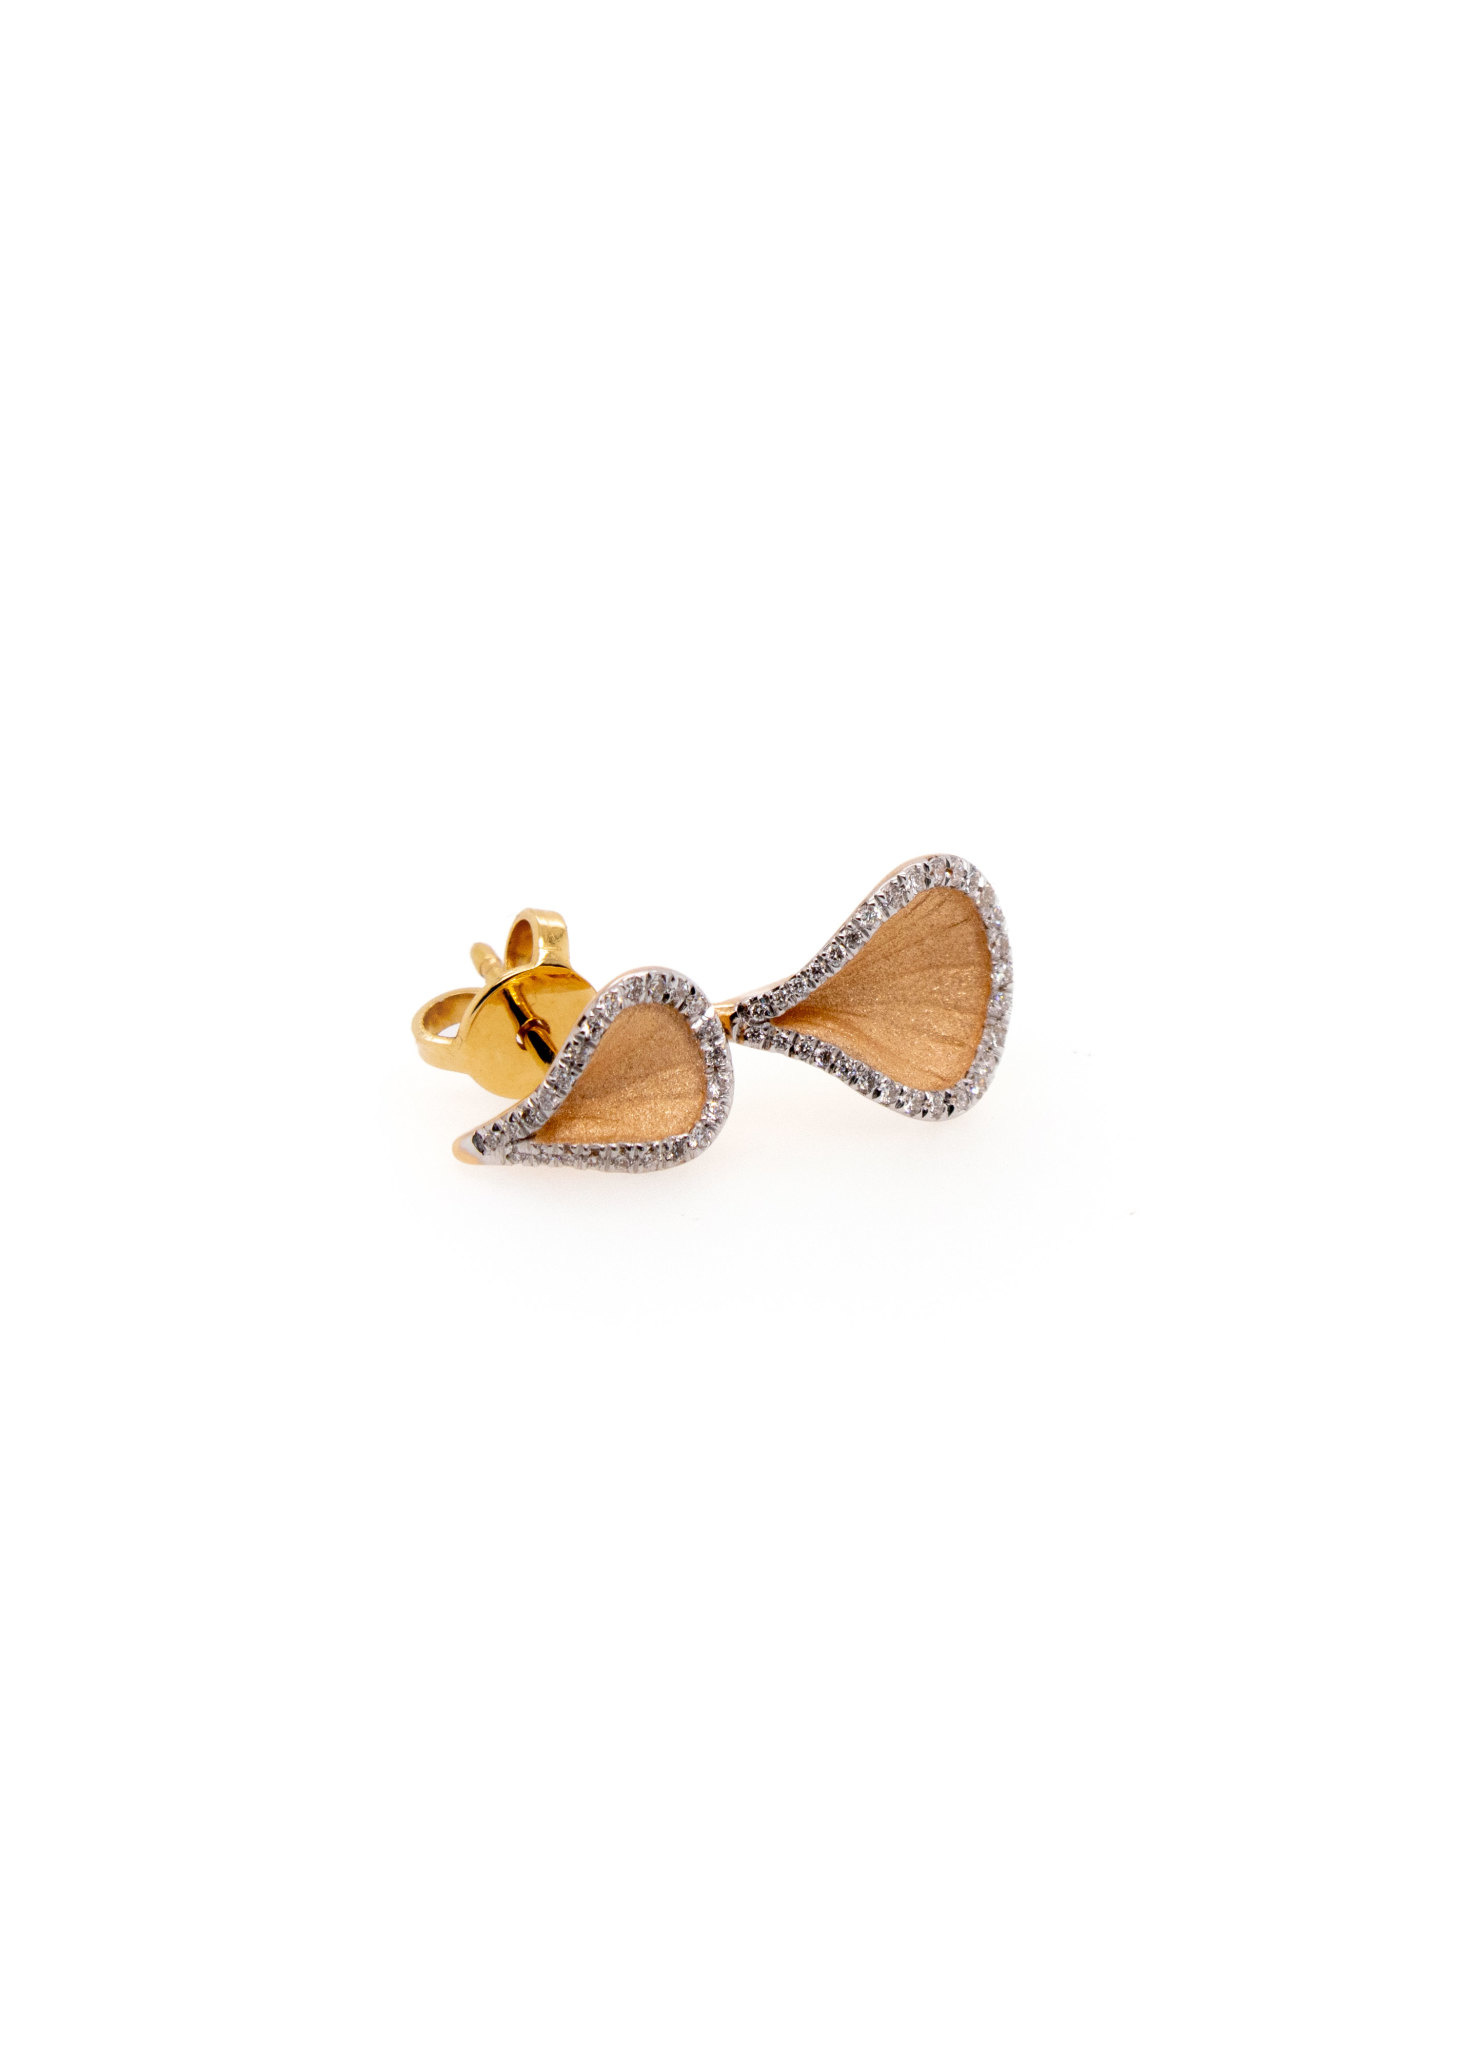 Goccia Collection Earrings, 18Kt Orange Apricot Gold With Diamonds-3